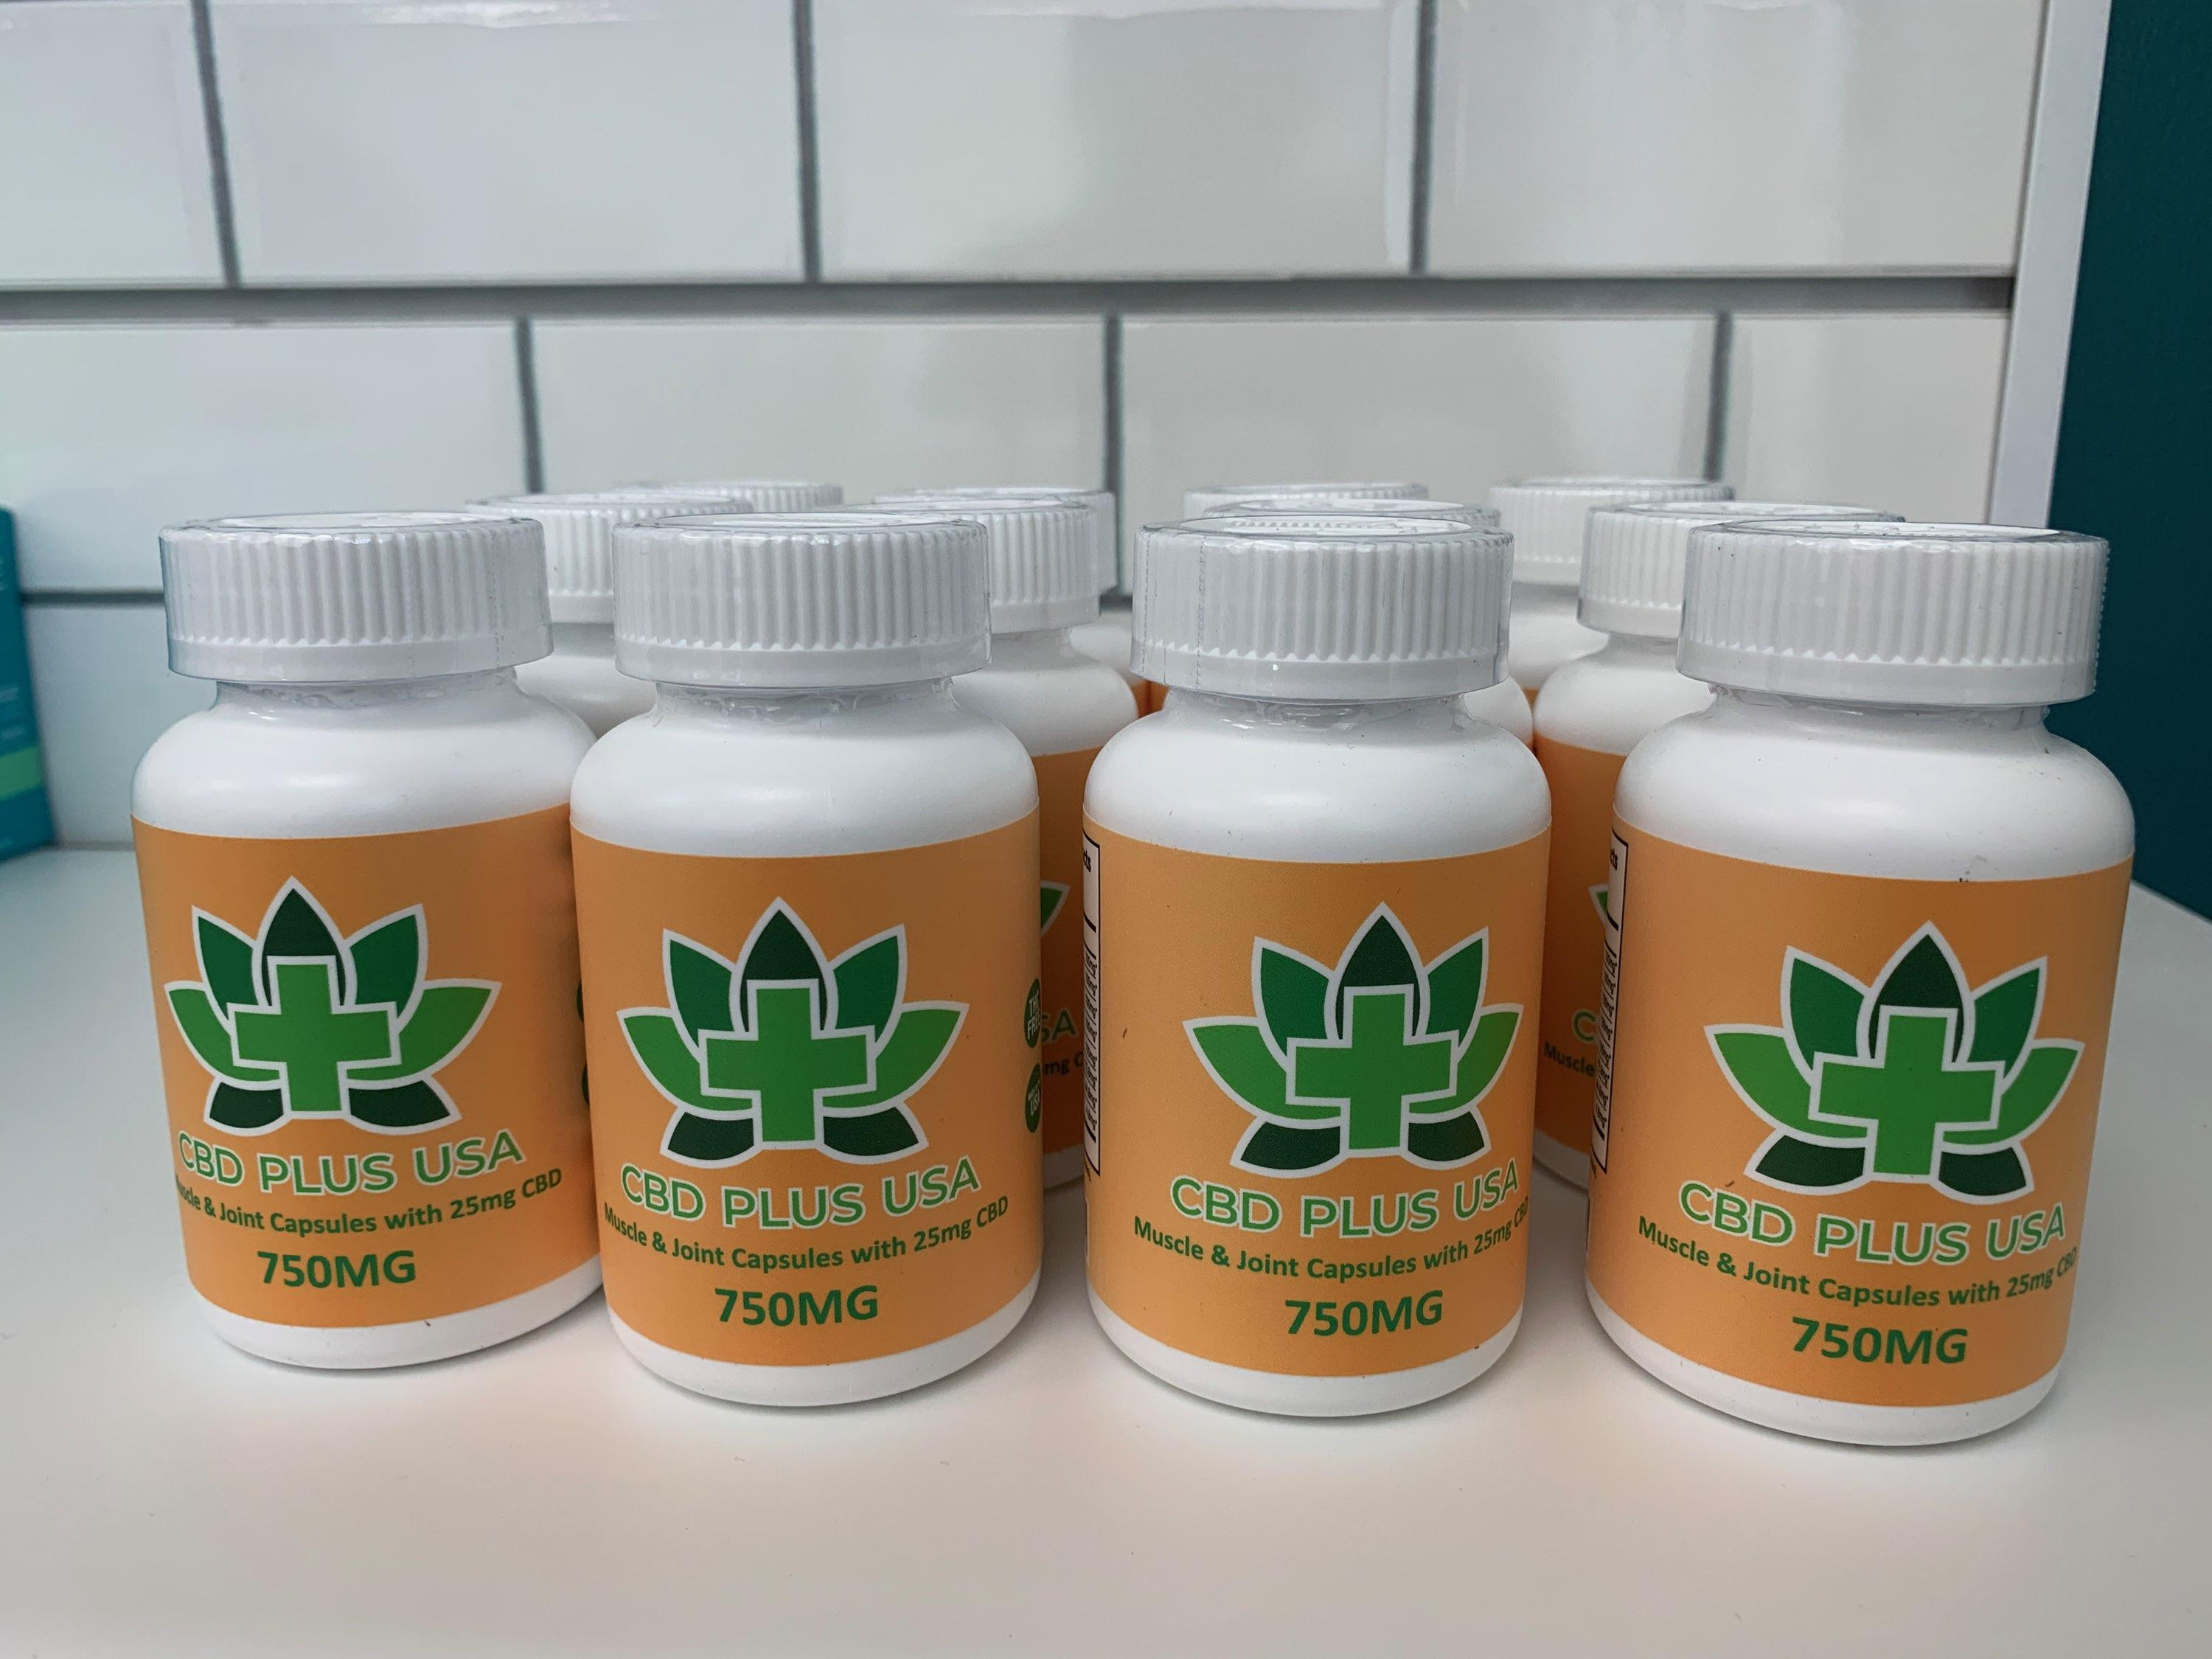 CBD Plus USA has dozens of locations across the country. (Courtesy CBD Plus USA)